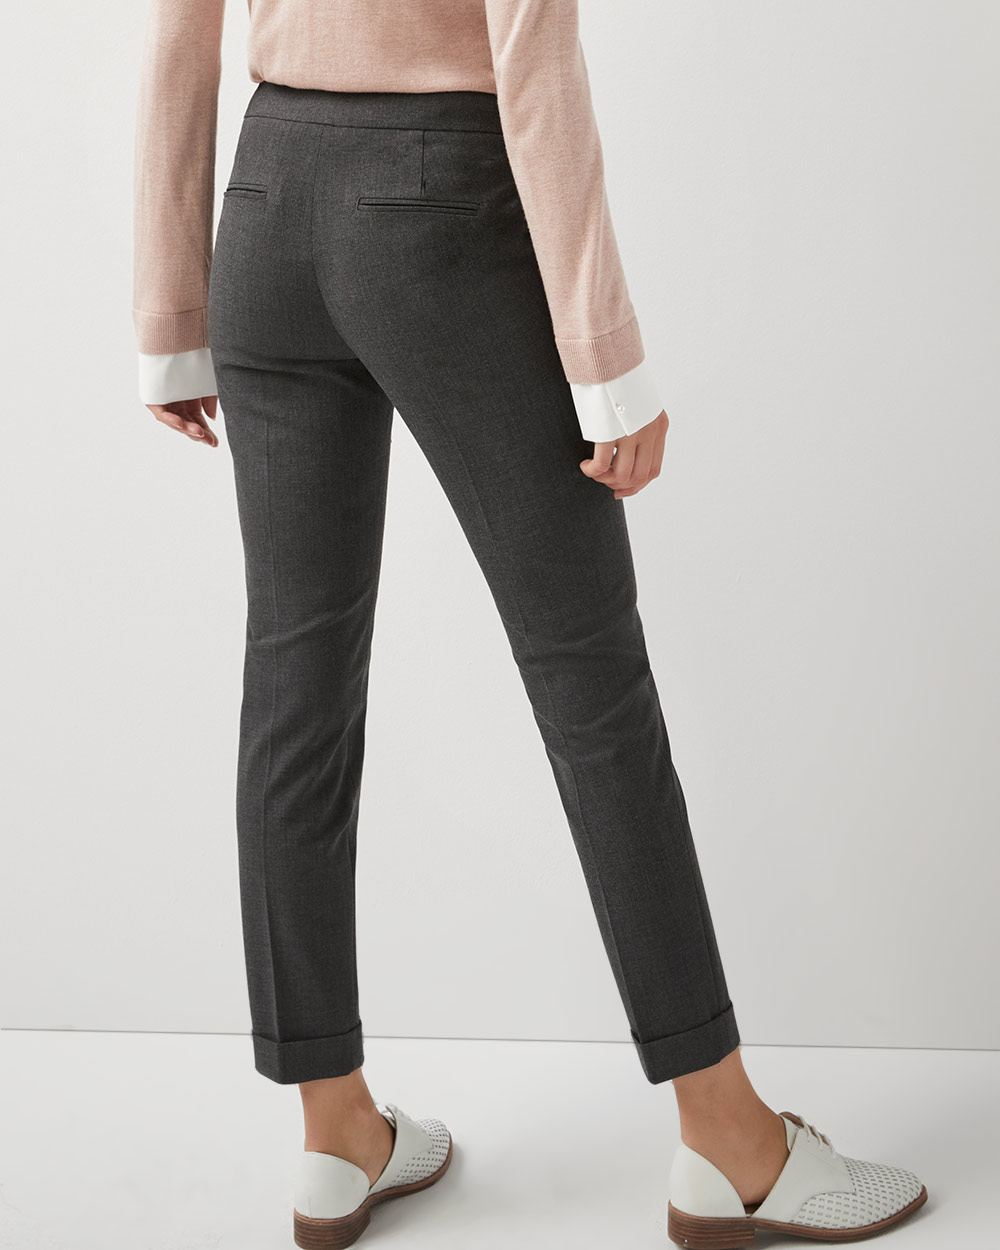 Heather grey Stretch Signature fit Slim leg cuffed Ankle Pant